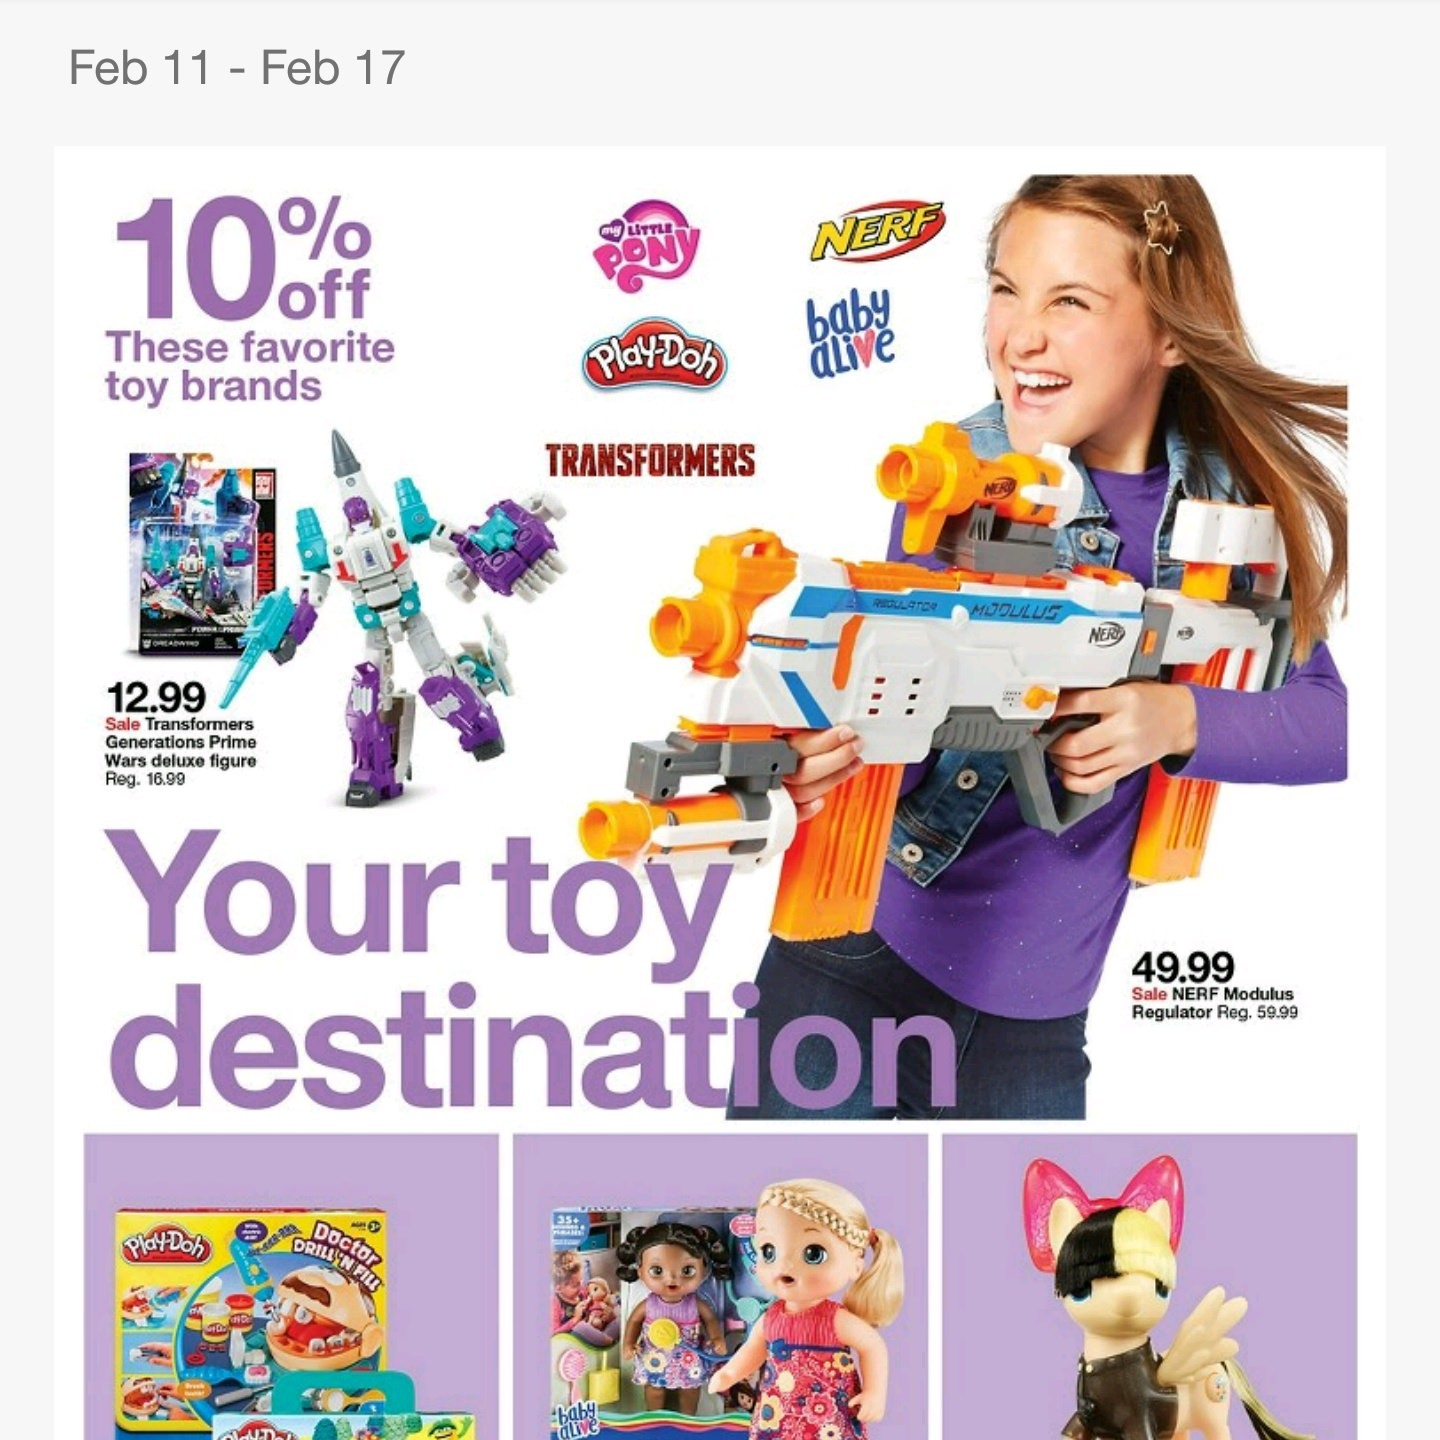 Transformers News: Steal of a Deal: 10% off Transformers Toys In Store 2/11 Through 2/17